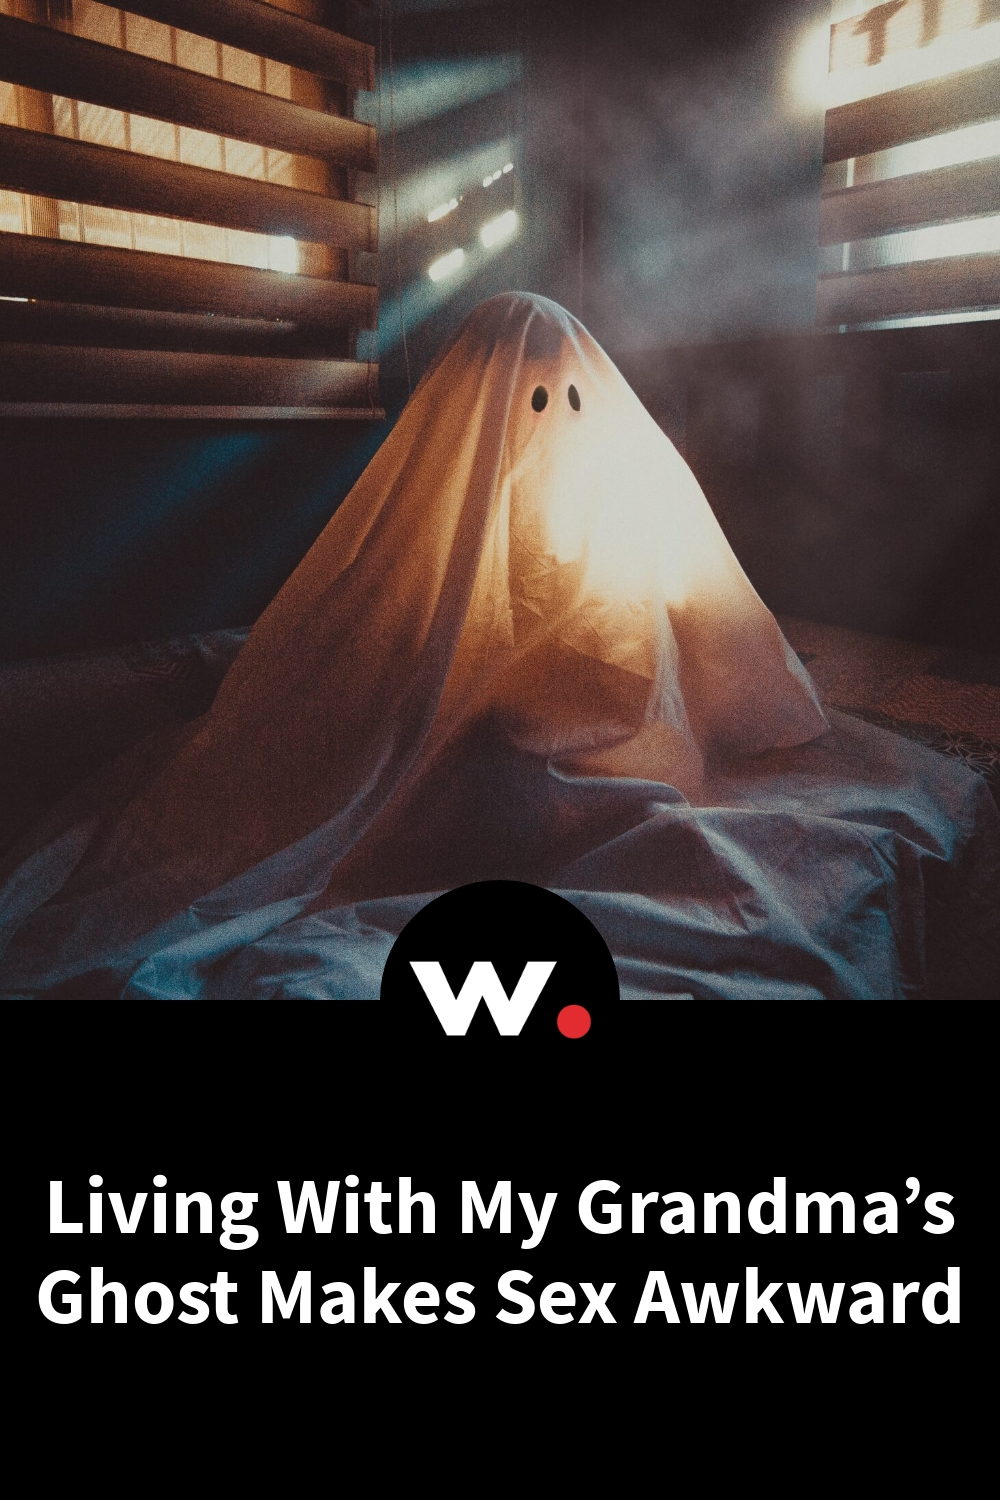 Living With My Grandma's Ghost Makes Sex Awkward